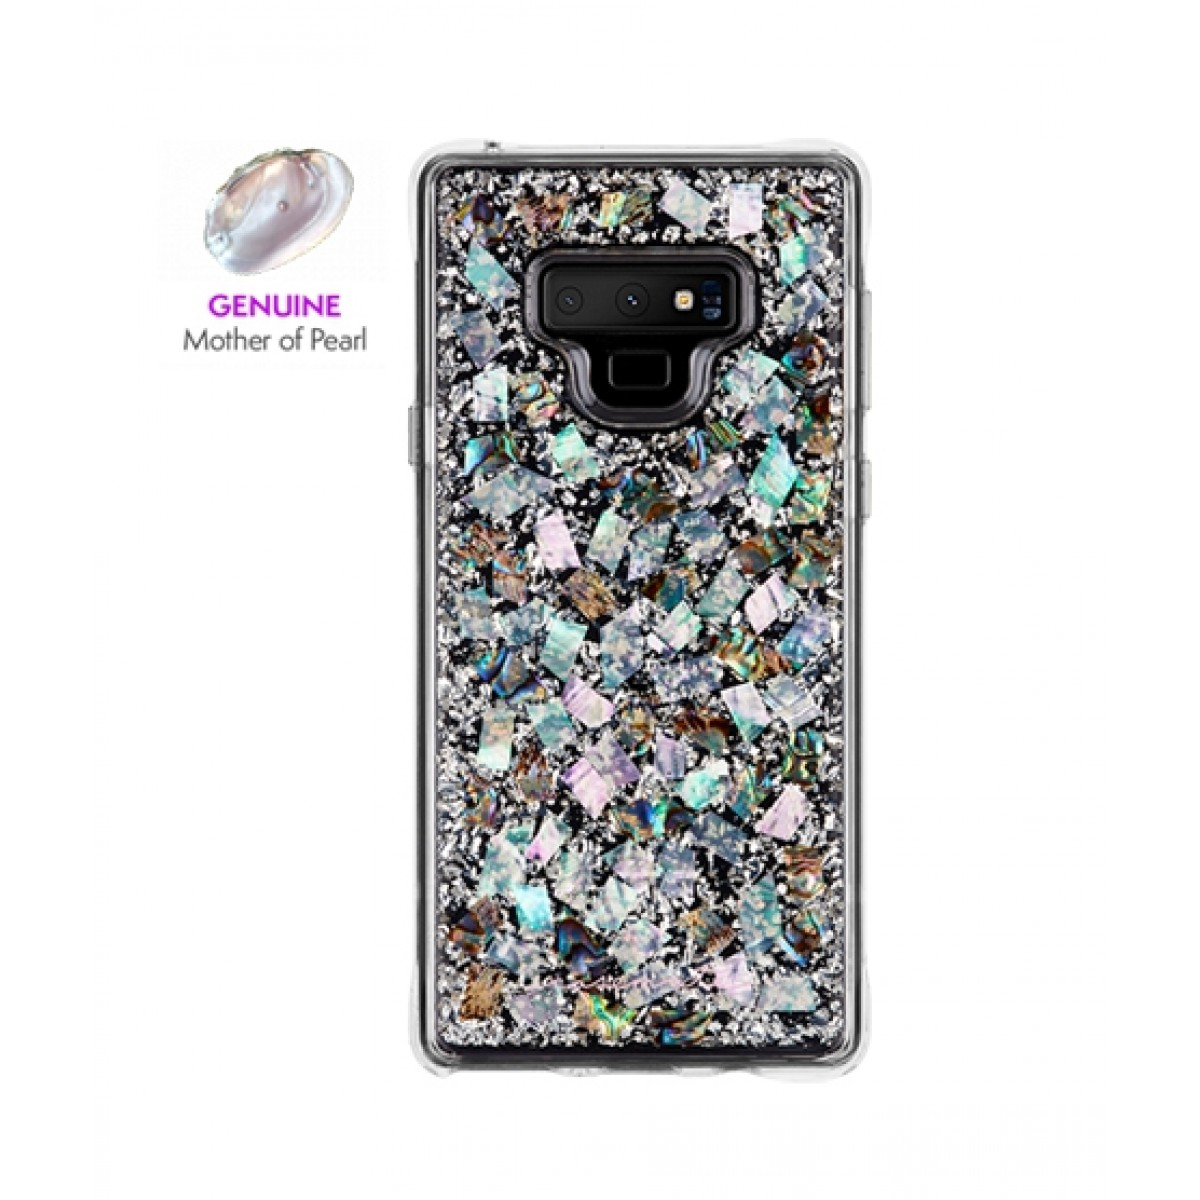 online retailer 51621 7ef9e Case Mate Karat Mother Of Pearl Case For Galaxy Note 9